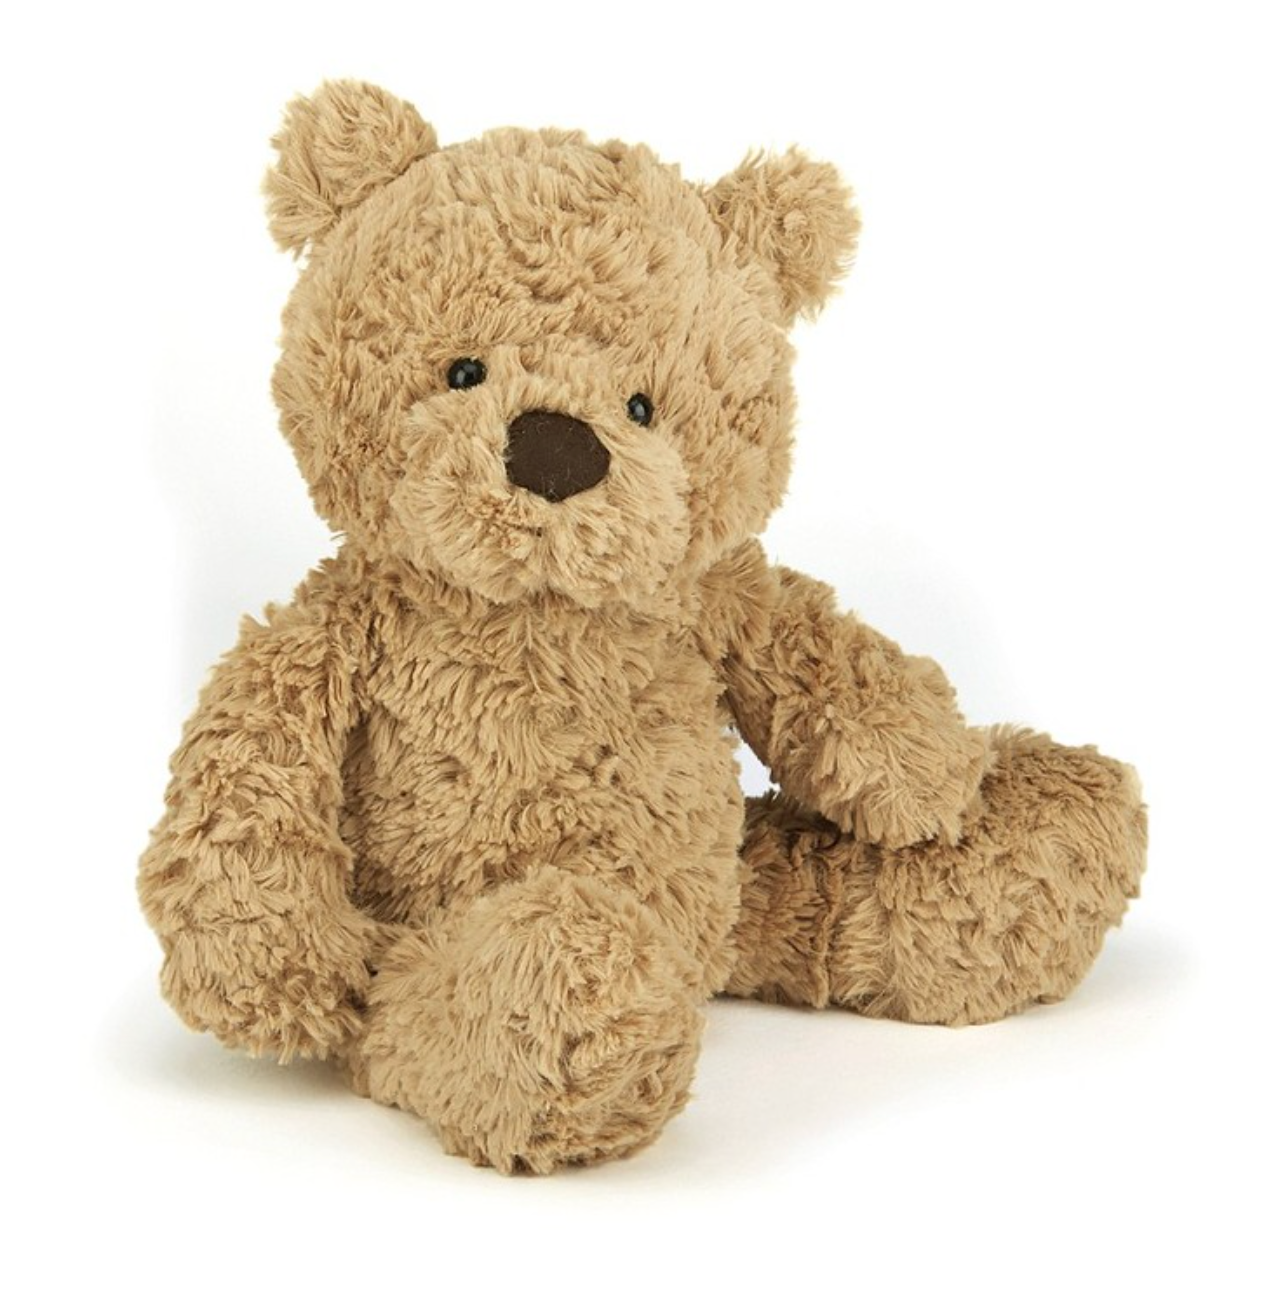 Bumbly Bear Stuffed Animal